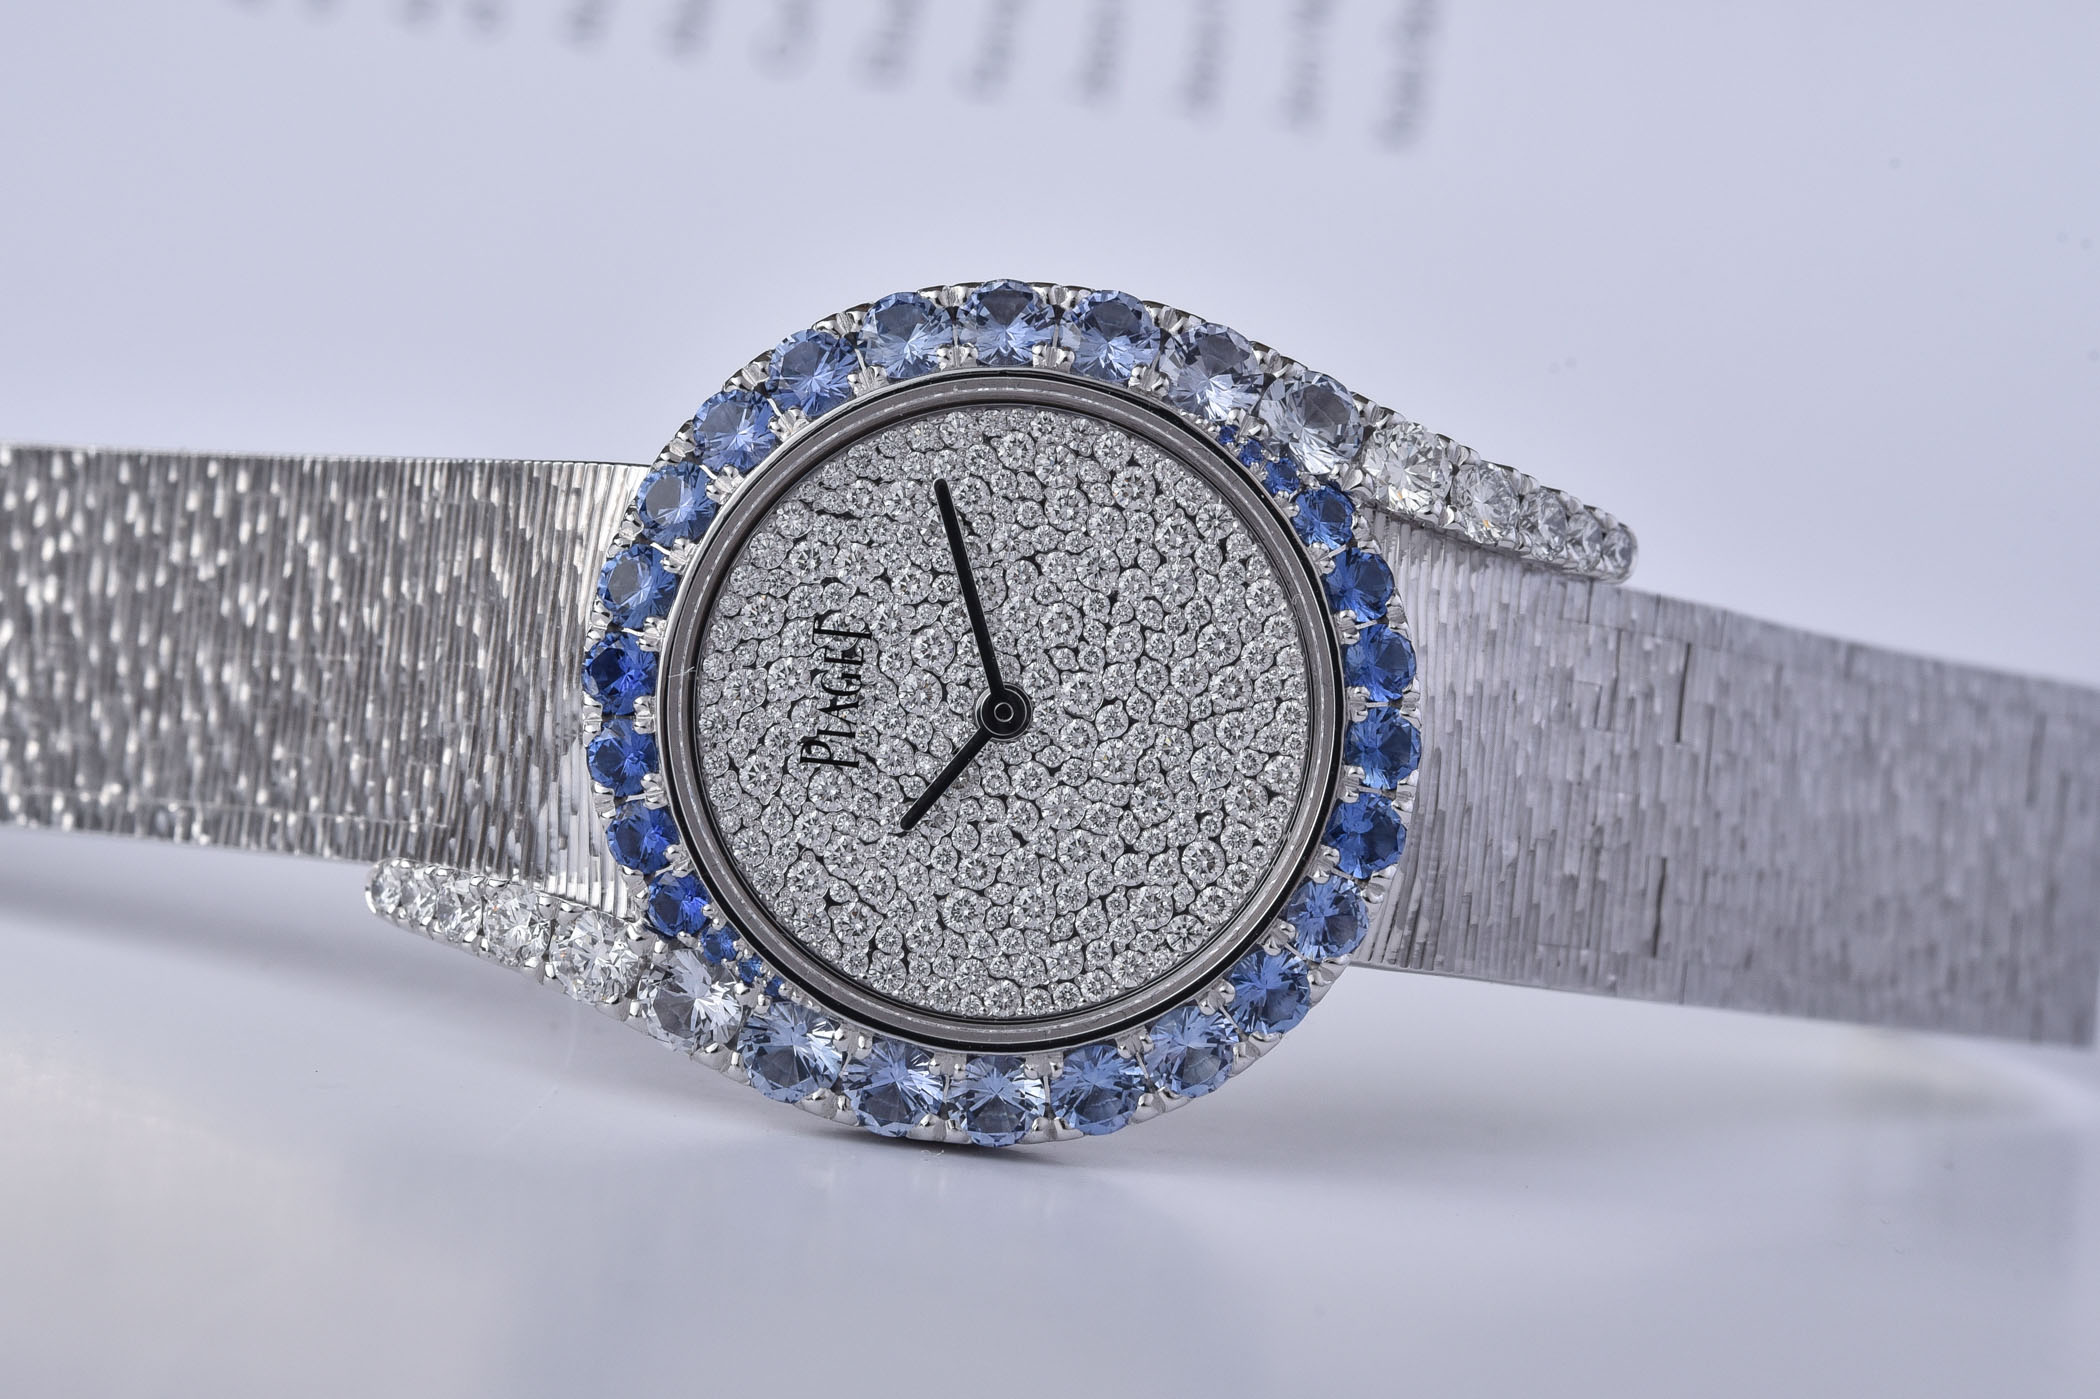 2021 Piaget Limelight Gala Collection - 2